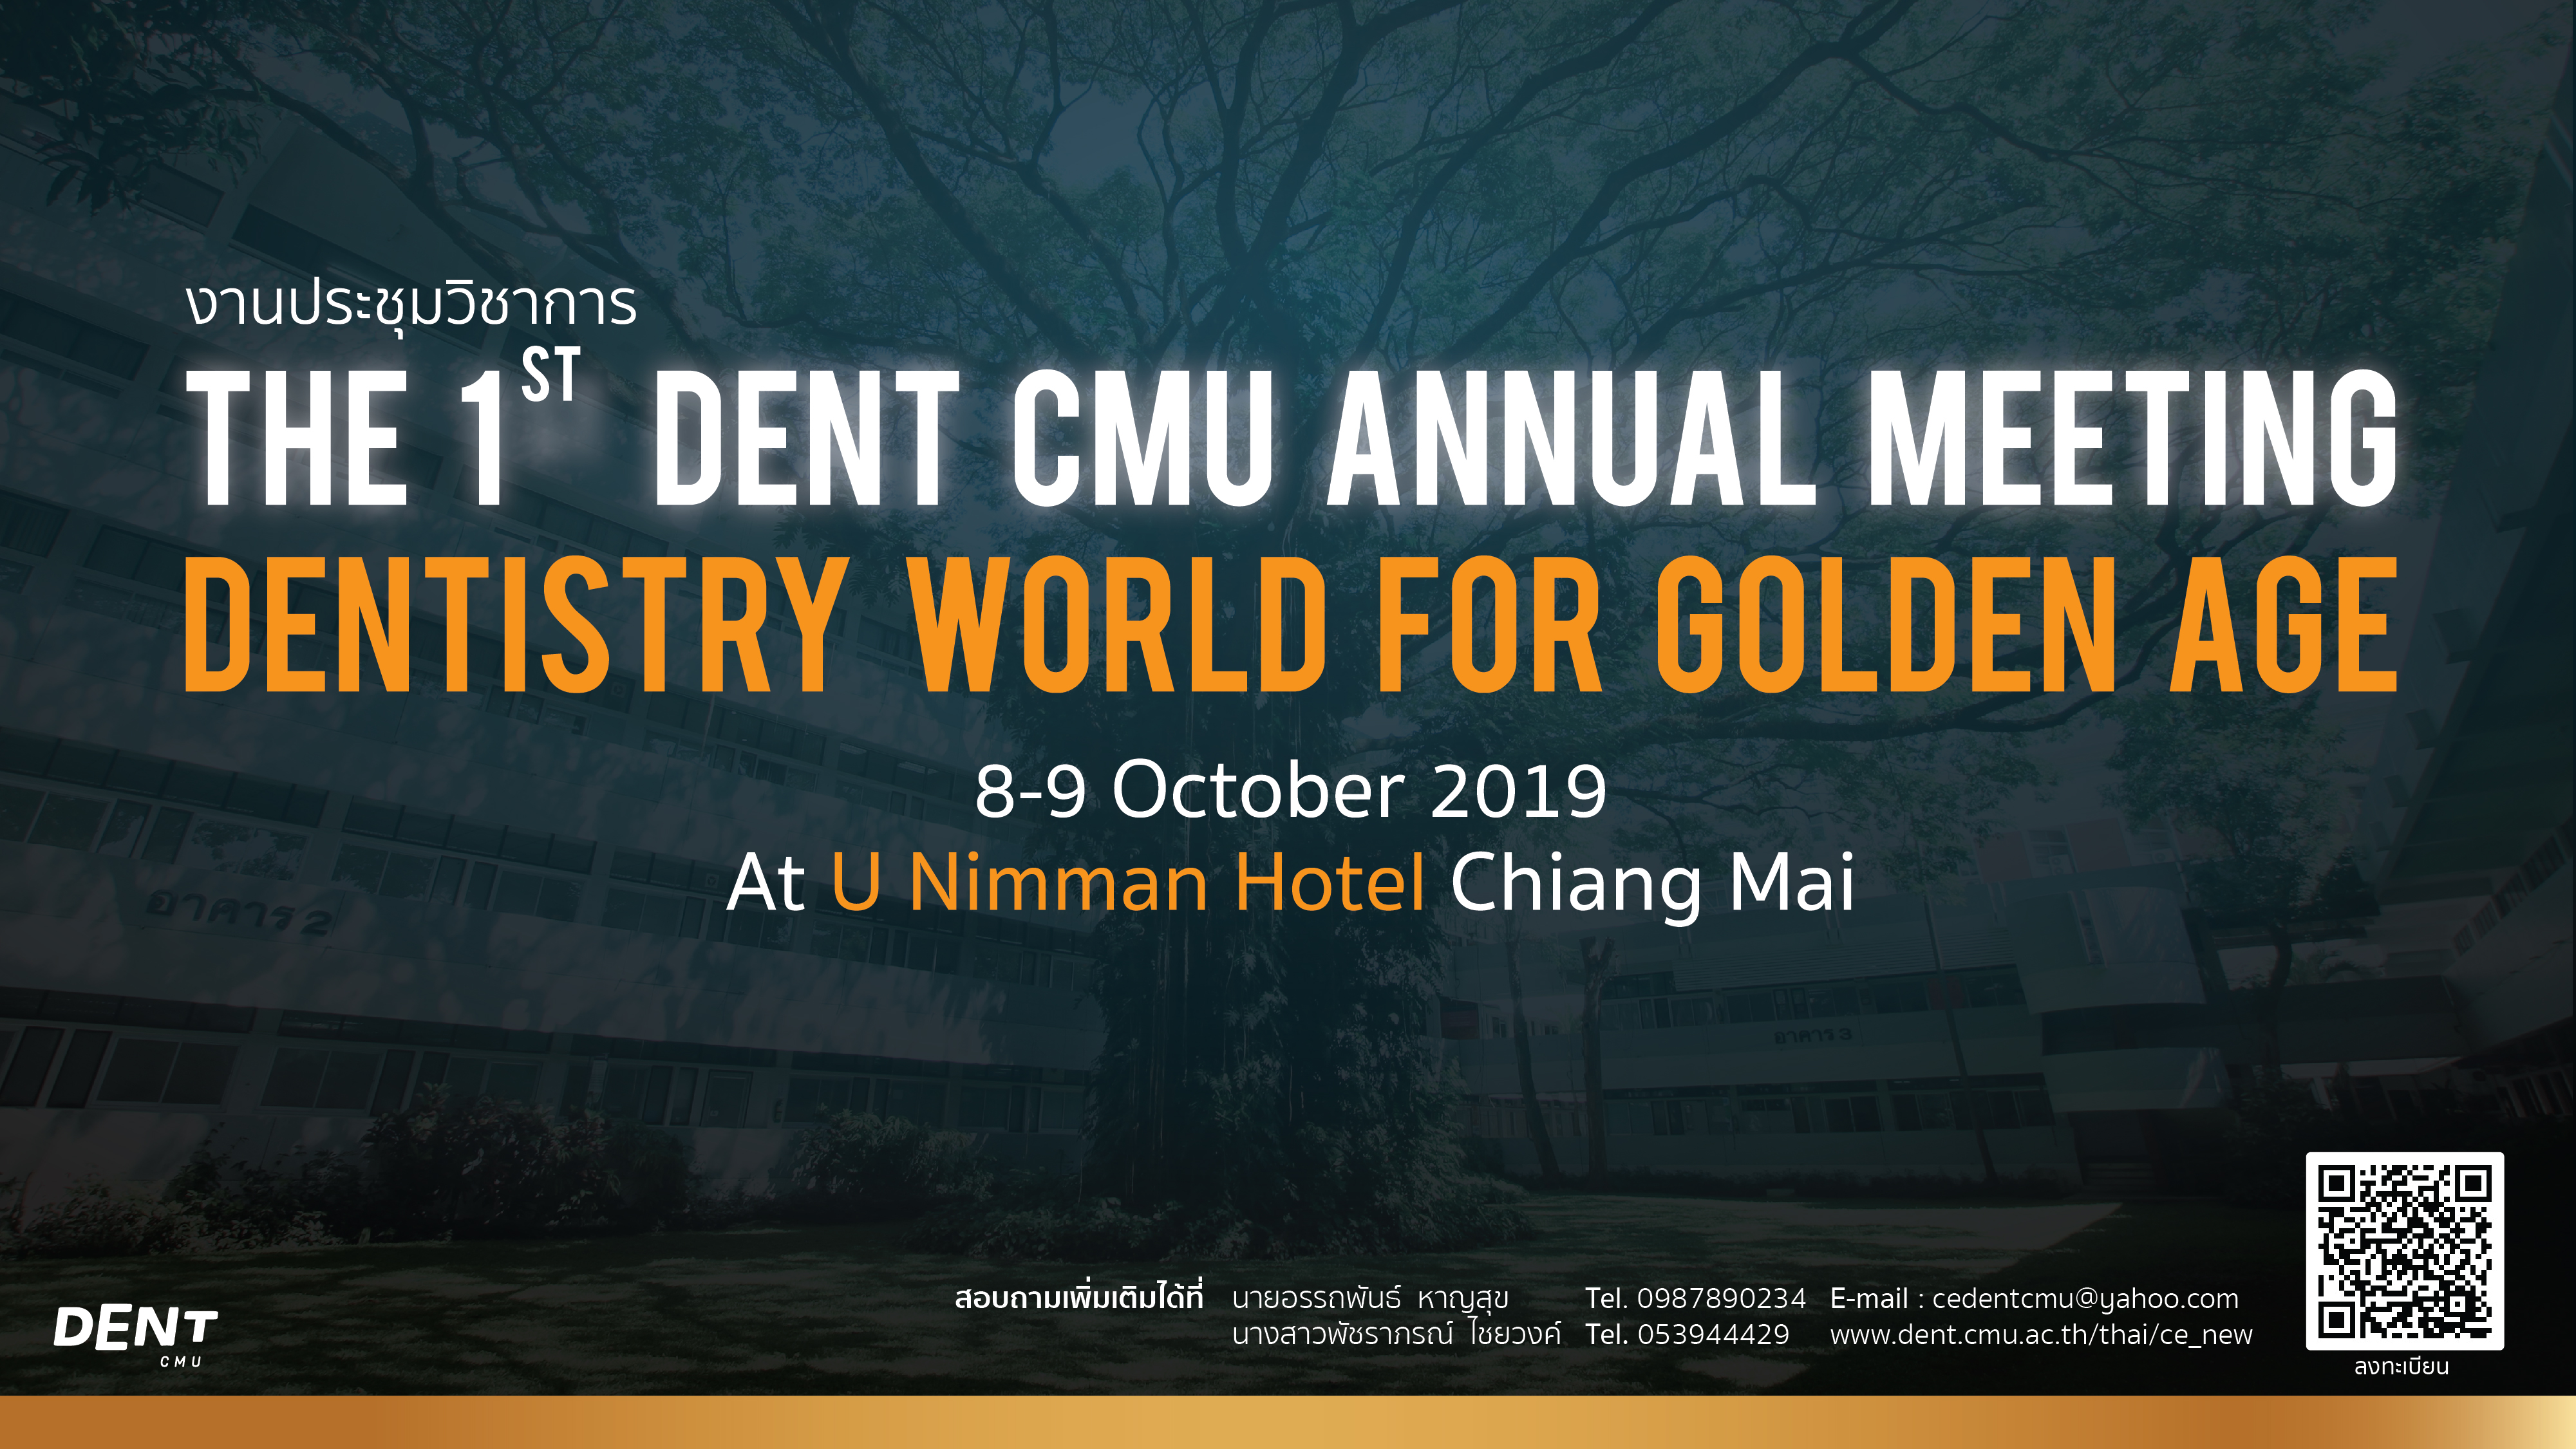 The 1st DENT CMU Annual Meeting: Dentistry World for Golden Age